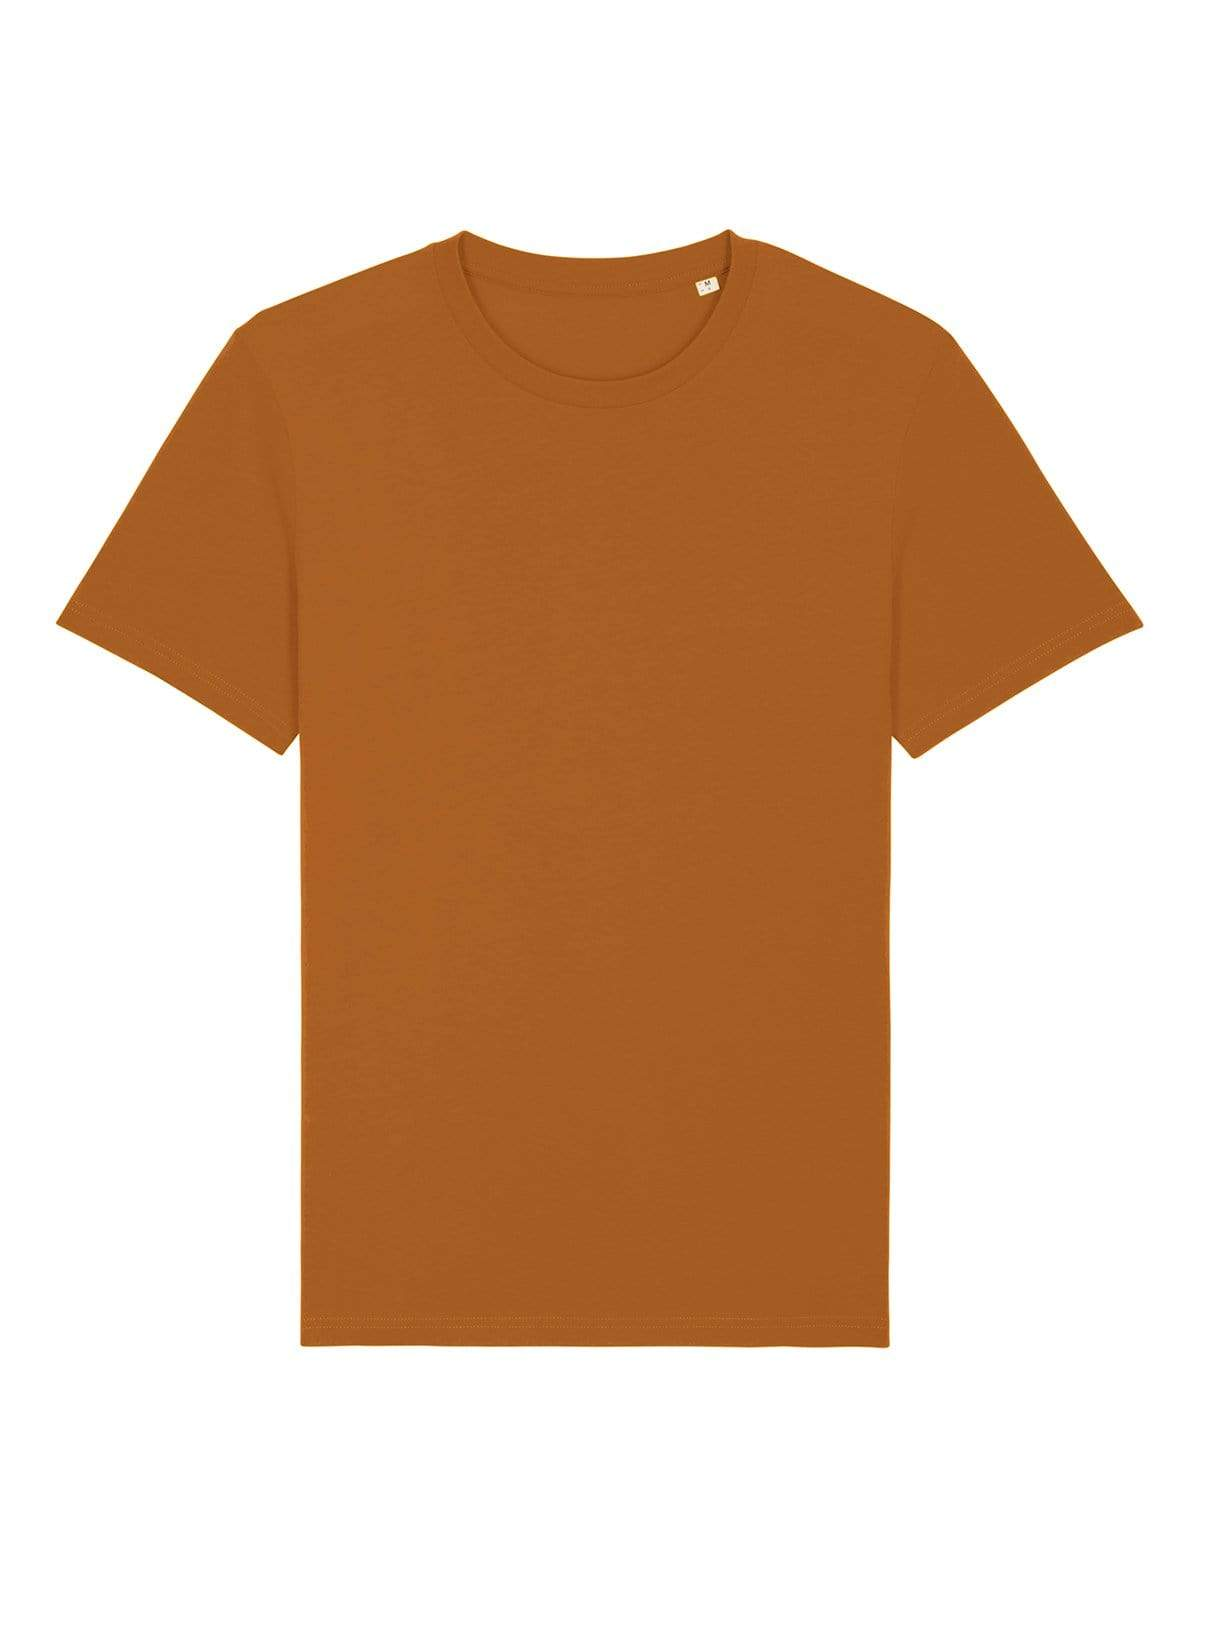 Unisex t-shirt - roasted orange